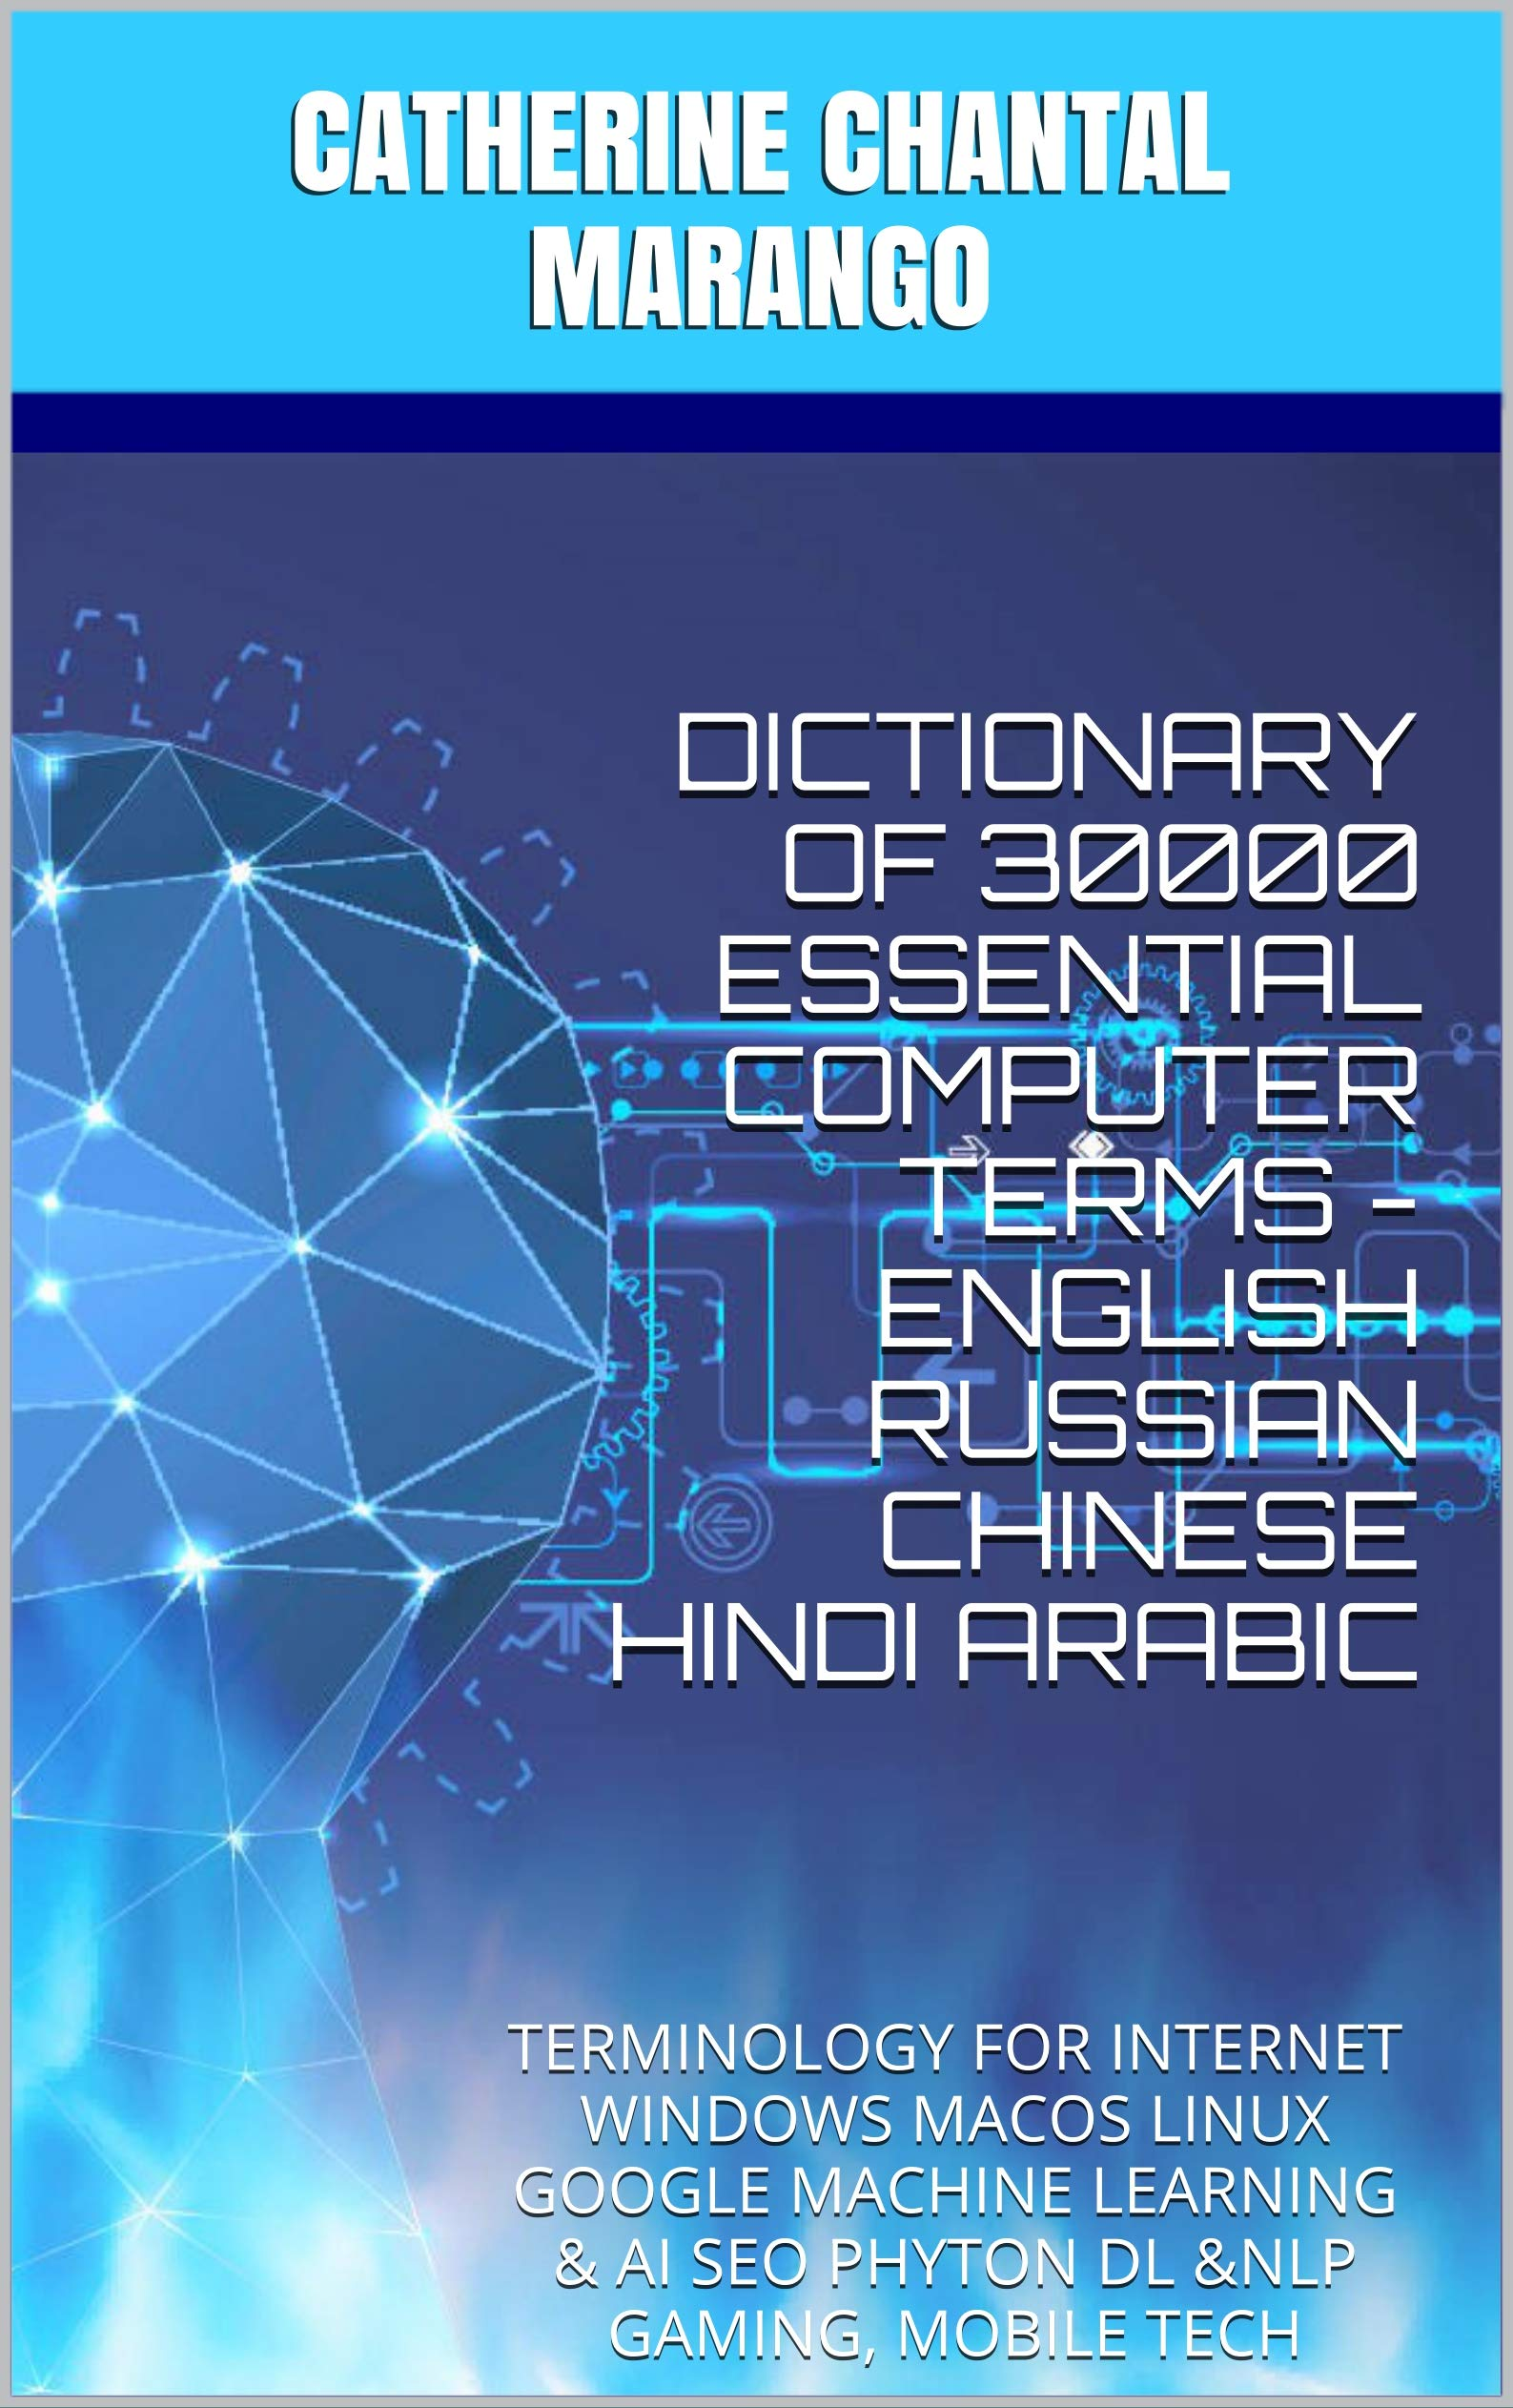 DICTIONARY OF 30000 ESSENTIAL COMPUTER TERMS - ENGLISH RUSSIAN CHINESE HINDI ARABIC: TERMINOLOGY FOR INTERNET WINDOWS MACOS LINUX GOOGLE MACHINE LEARNING & AI SEO PHYTON DL &NLP GAMING, MOBILE TECH